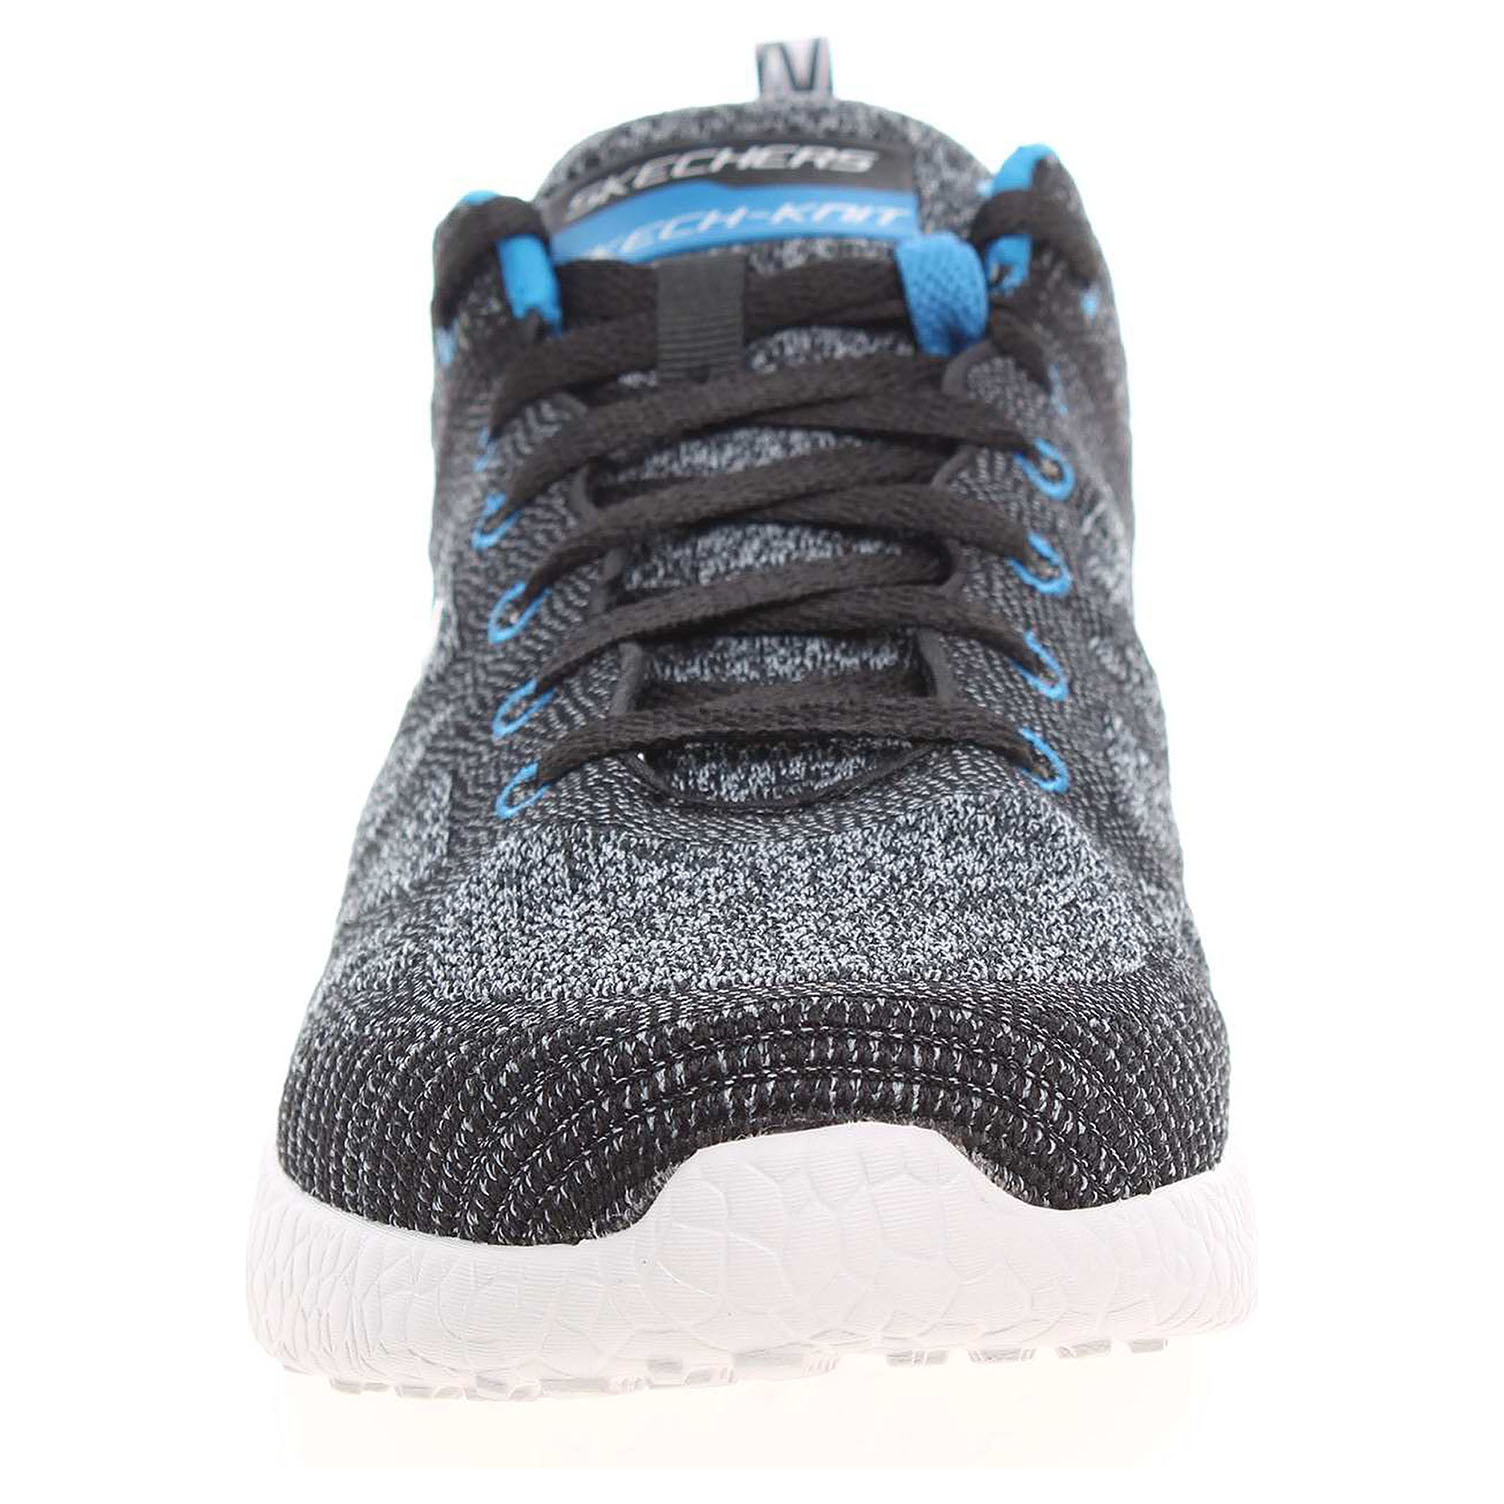 detail Skechers Deal Closer black-blue